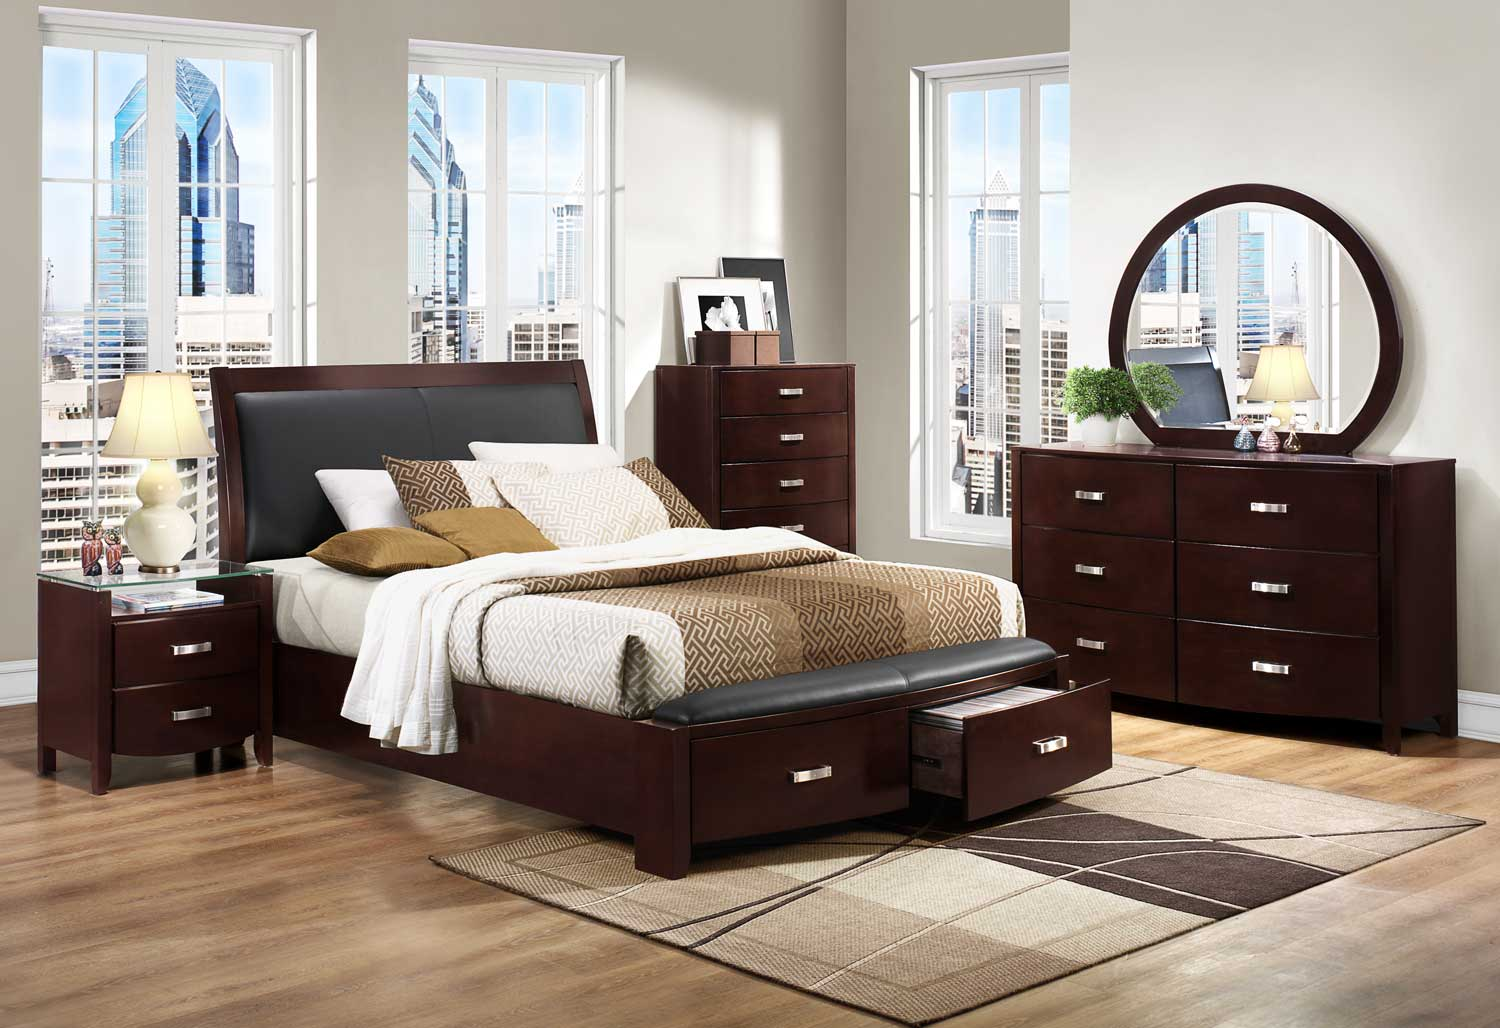 Homelegance Lyric Platform Bedroom Set  Dark Espresso B1737NCBEDSET at Homelementcom